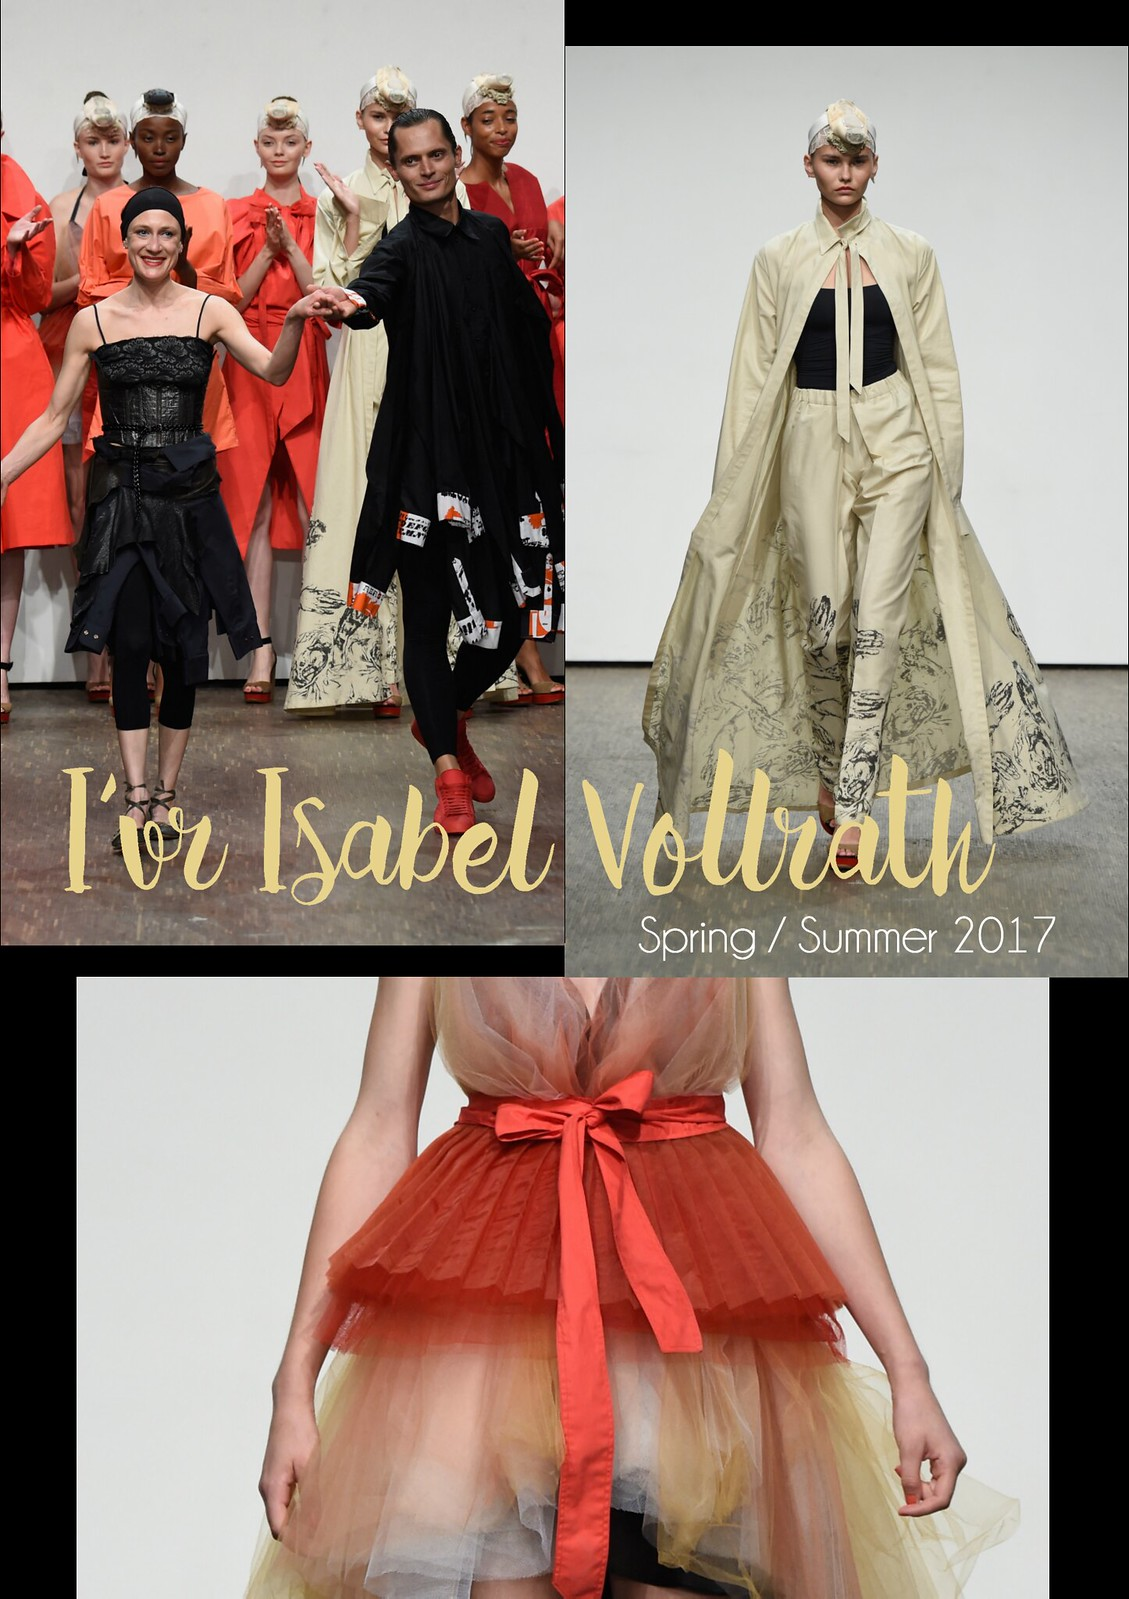 Berlin Fashion Week Bericht I'VR Isabell Vollrath SS17 I Style By Charlotte